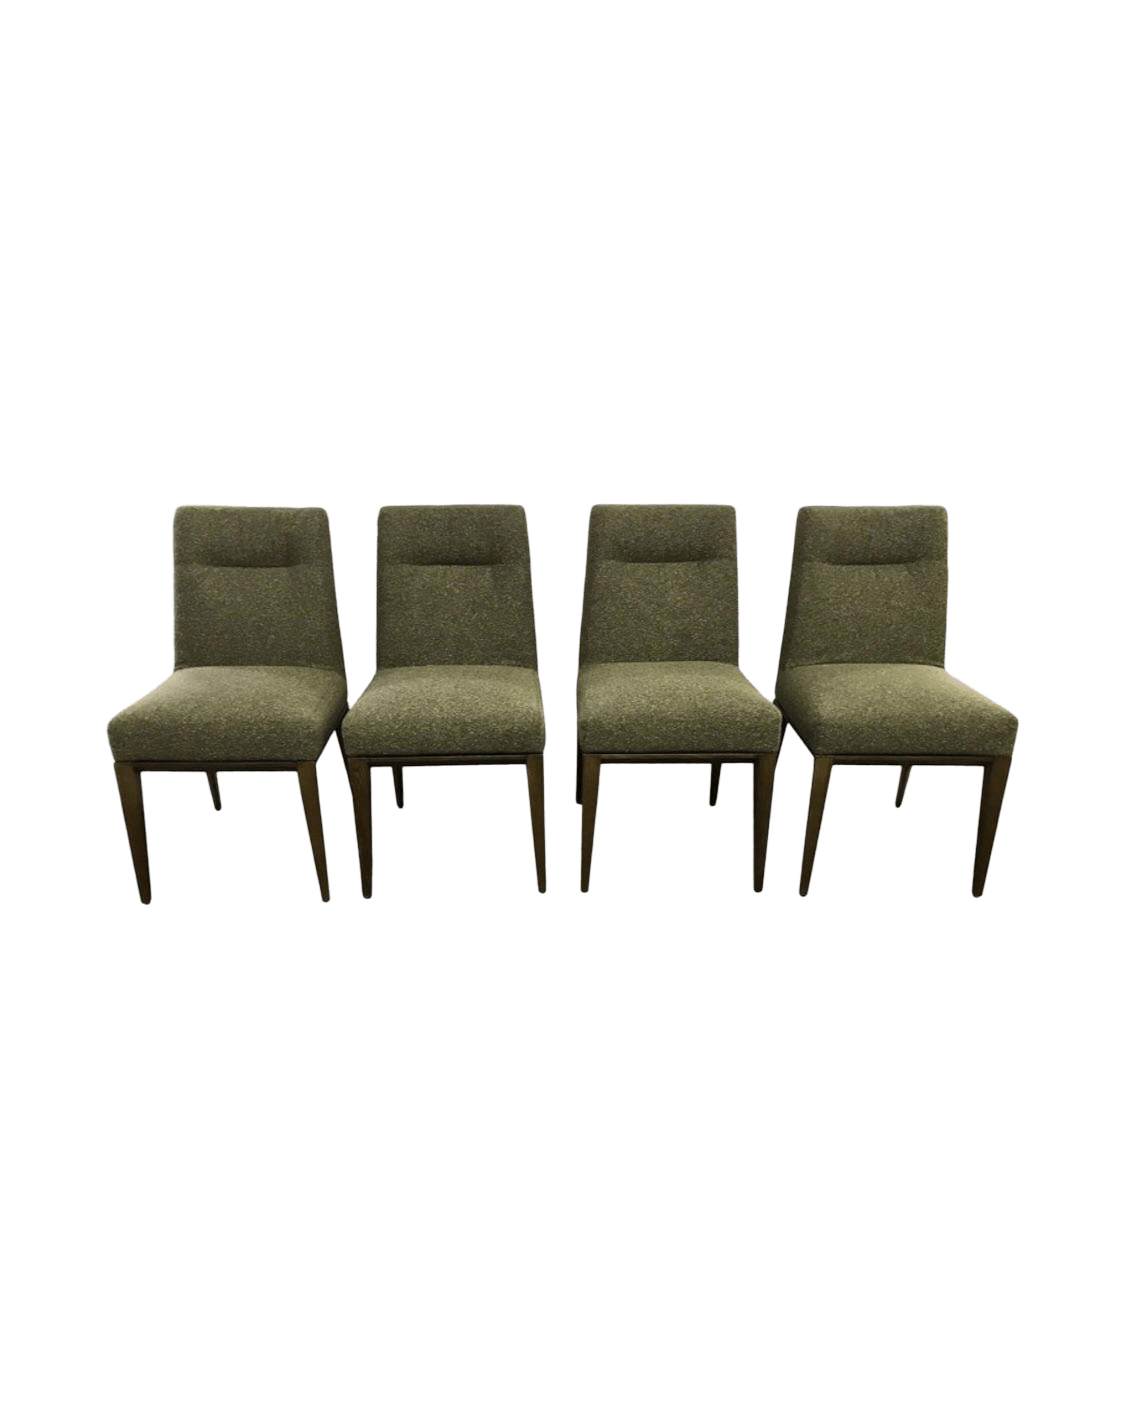 Calligaris Dining Chairs Calligaris Italy Olive Tweed Weave Upholstered Dining Chairs Set Of 4